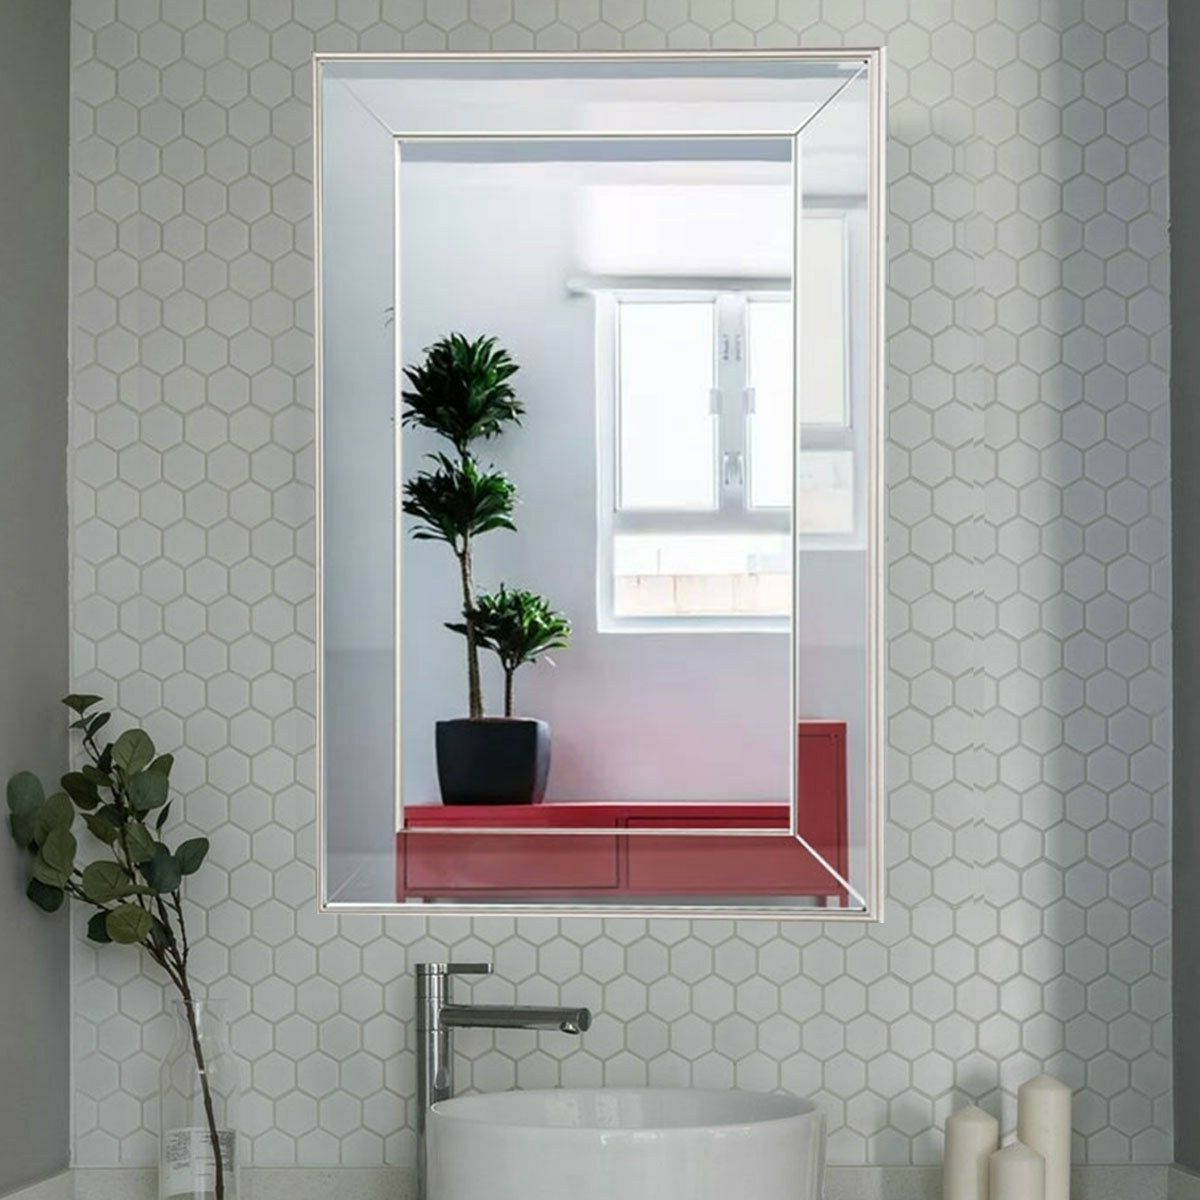 Recent Large Flat Mounted Beveled Frame Framed Wall Mirror 30.5X20X1 Inch Facing  Glass Throughout Large Framed Wall Mirrors (Gallery 13 of 20)